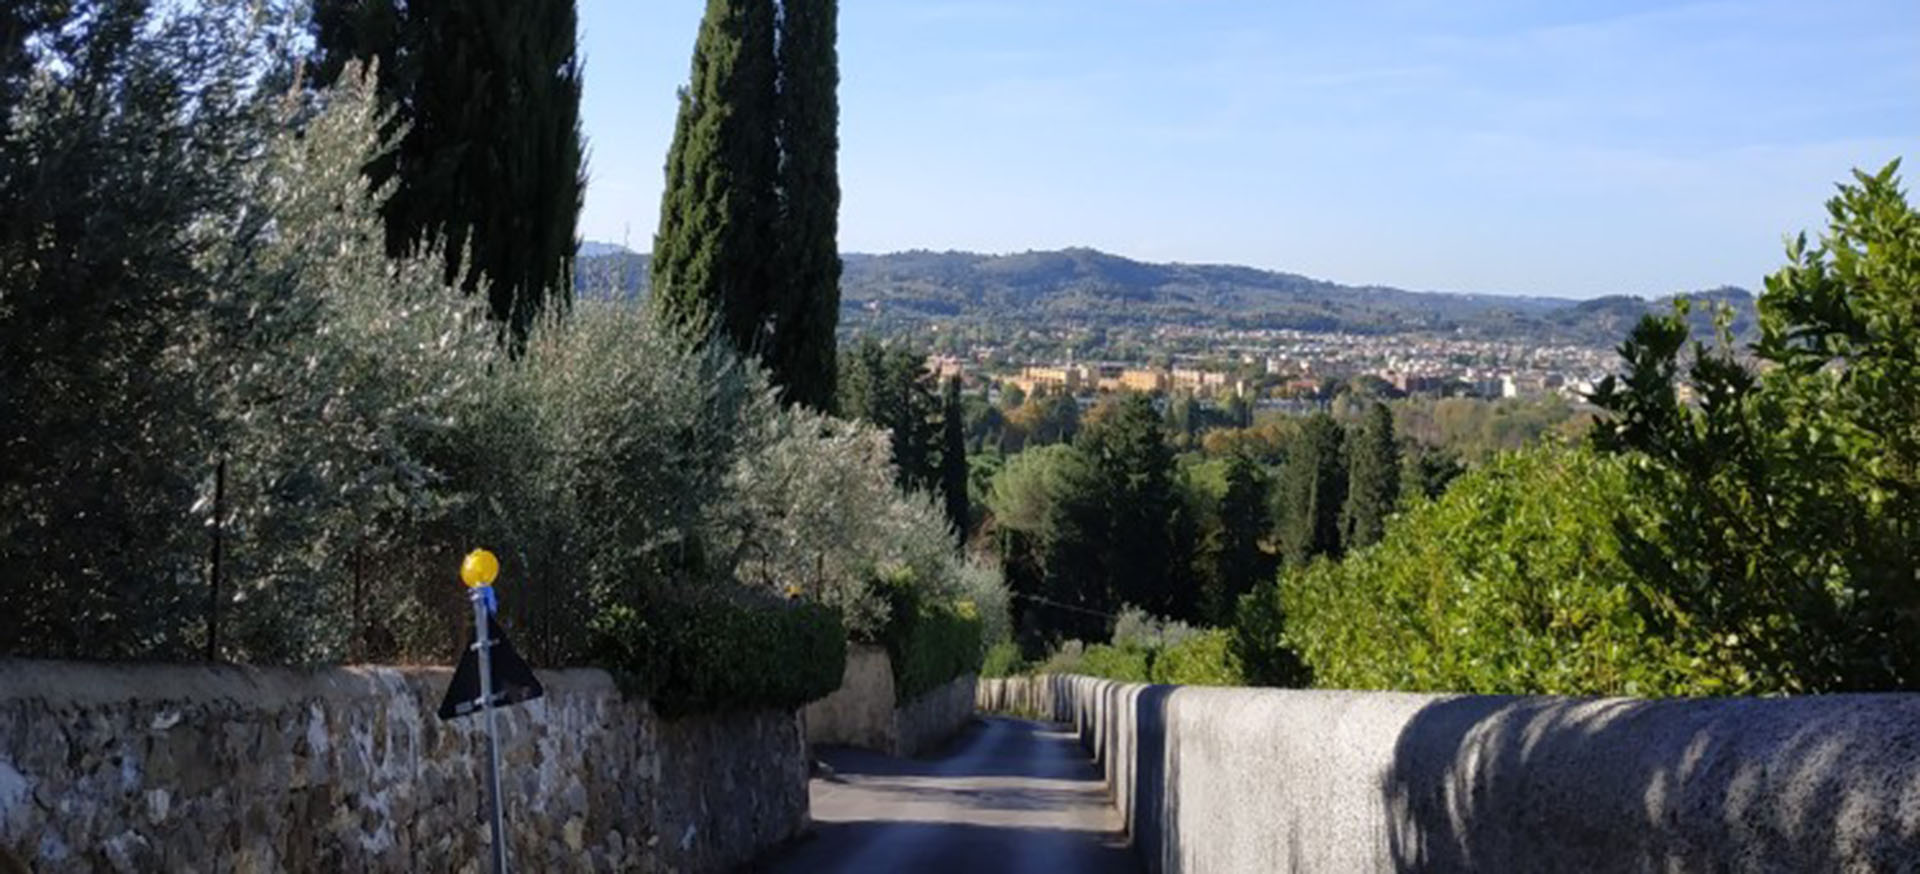 B Guide - Guided Tours and Excursions in Tuscany